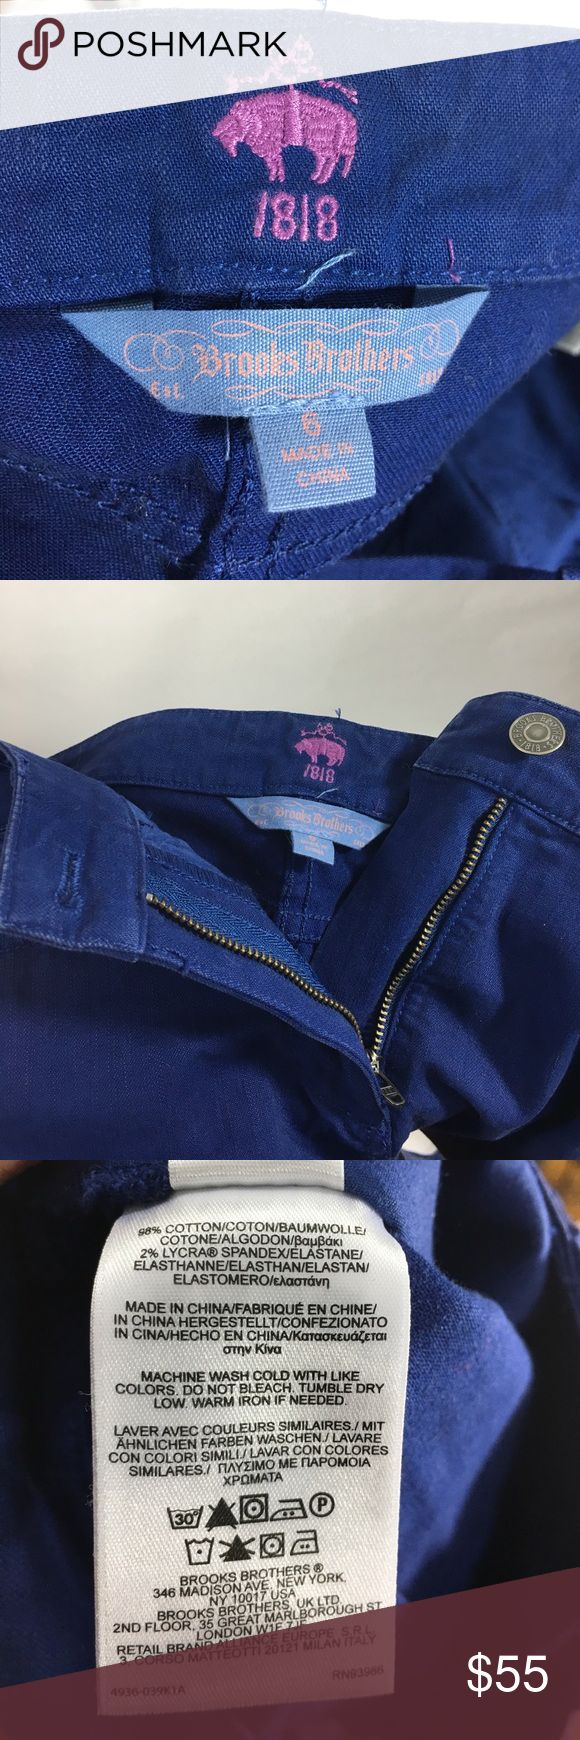 """Brooks Brothers royal blue/purple skinny pants Adorable stretchy skinny pants by Brooks Brothers. 5 pocket style, zip fly with button closure. They are in between a royal blue and purple. Great color!! Size 6. Leg inseam is 29.5"""", waist is 15.5"""" flat across waistband and front rise is 9.5"""".   98% Cotton and 2% spandex blend. I bought them with the intention of wearing them a couple of times but never did! Brooks Brothers Pants Skinny"""